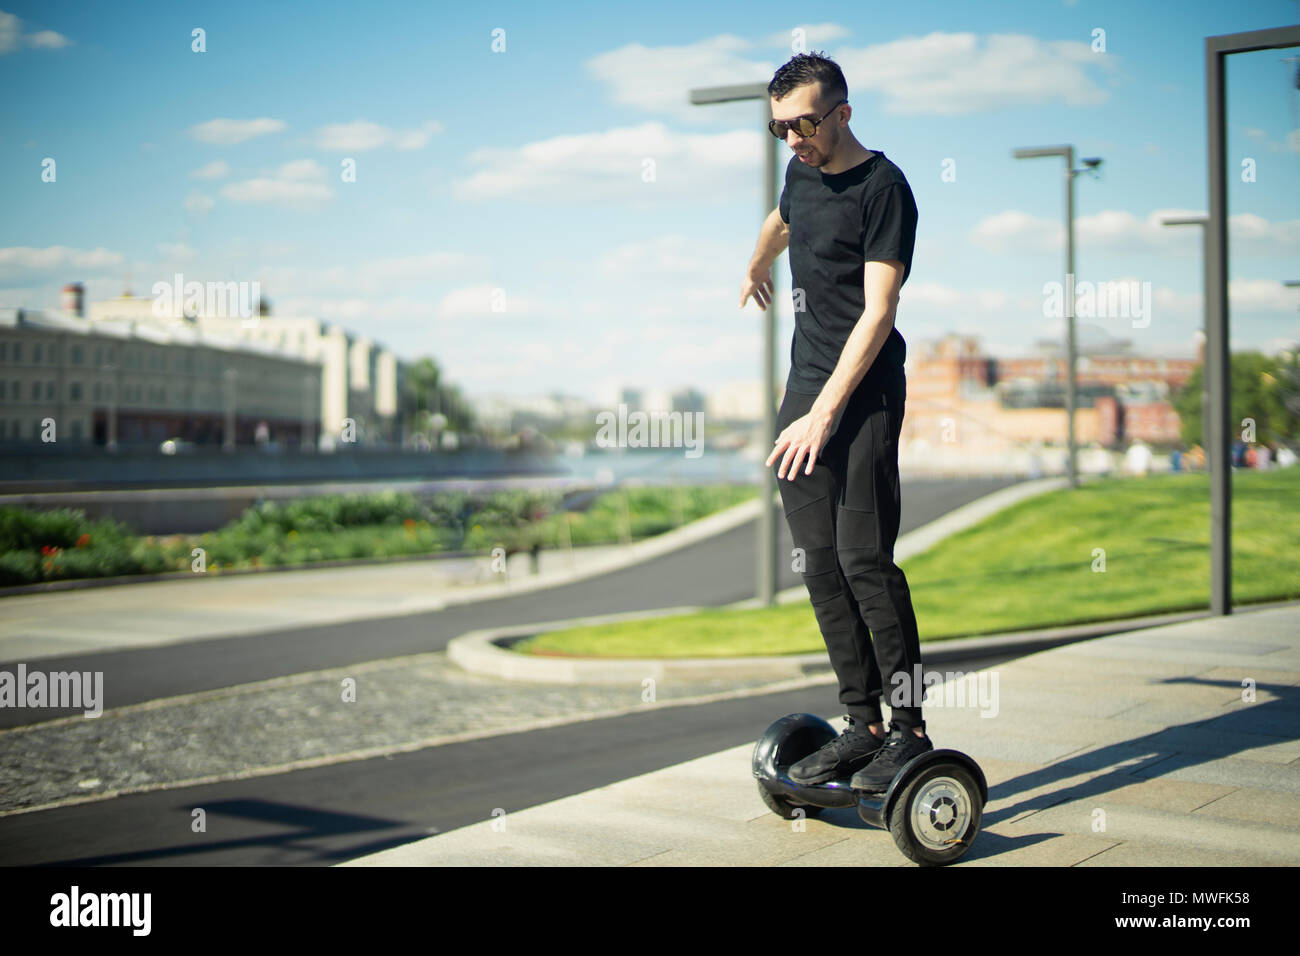 Young brunette man rides a gyroscope at park. Man is on focus, background is blurred. - Stock Image